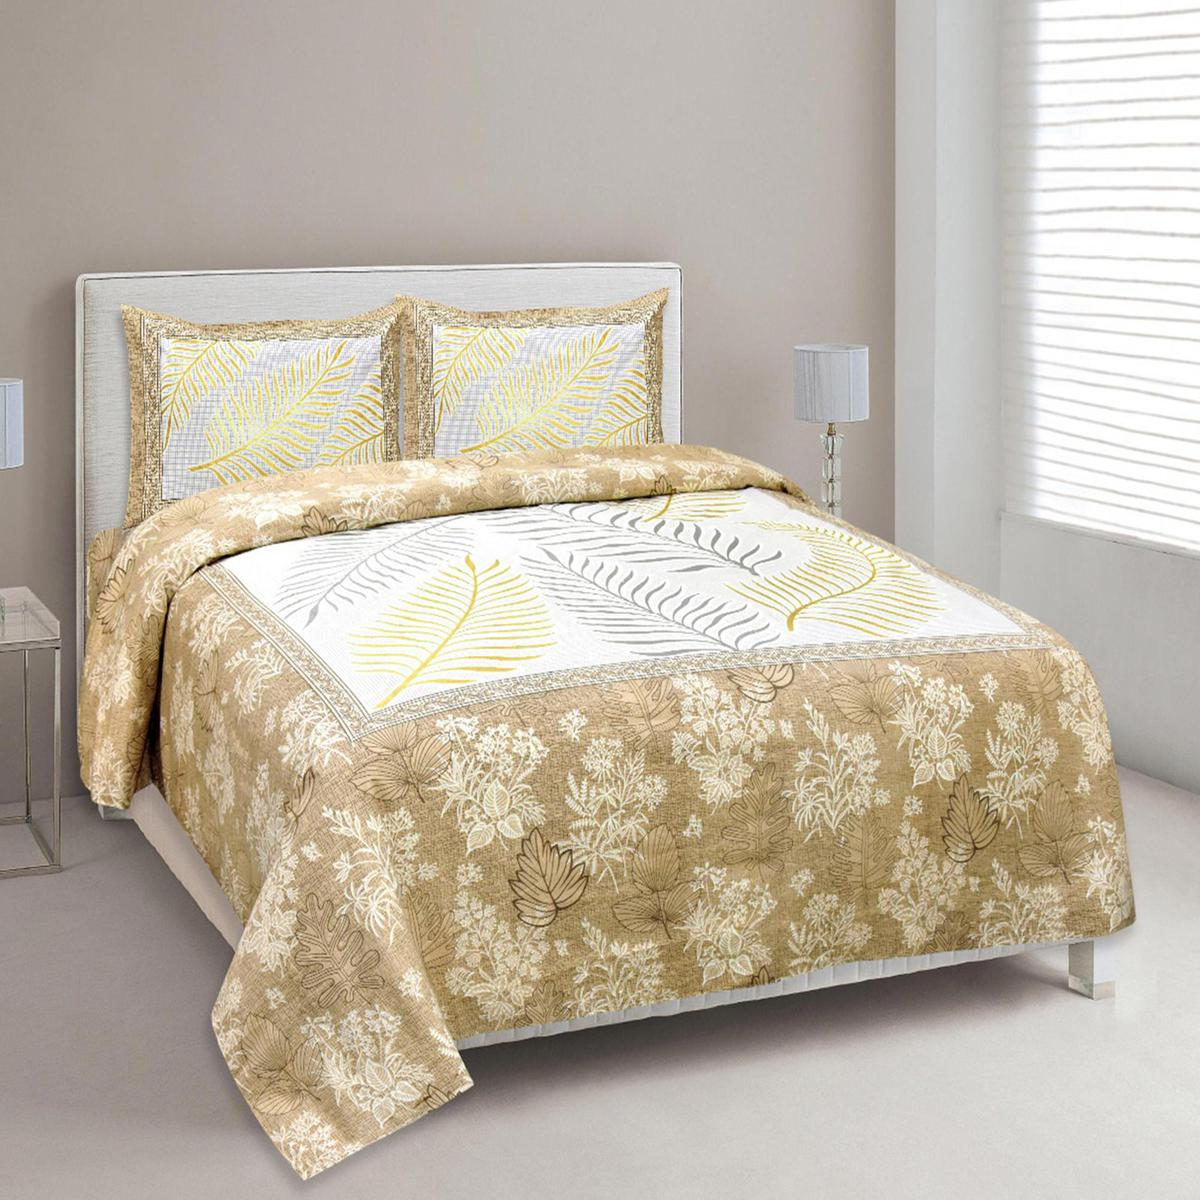 Opulent Beige Colored Floral Printed Cotton Double Bedsheet With Pillow Cover Set